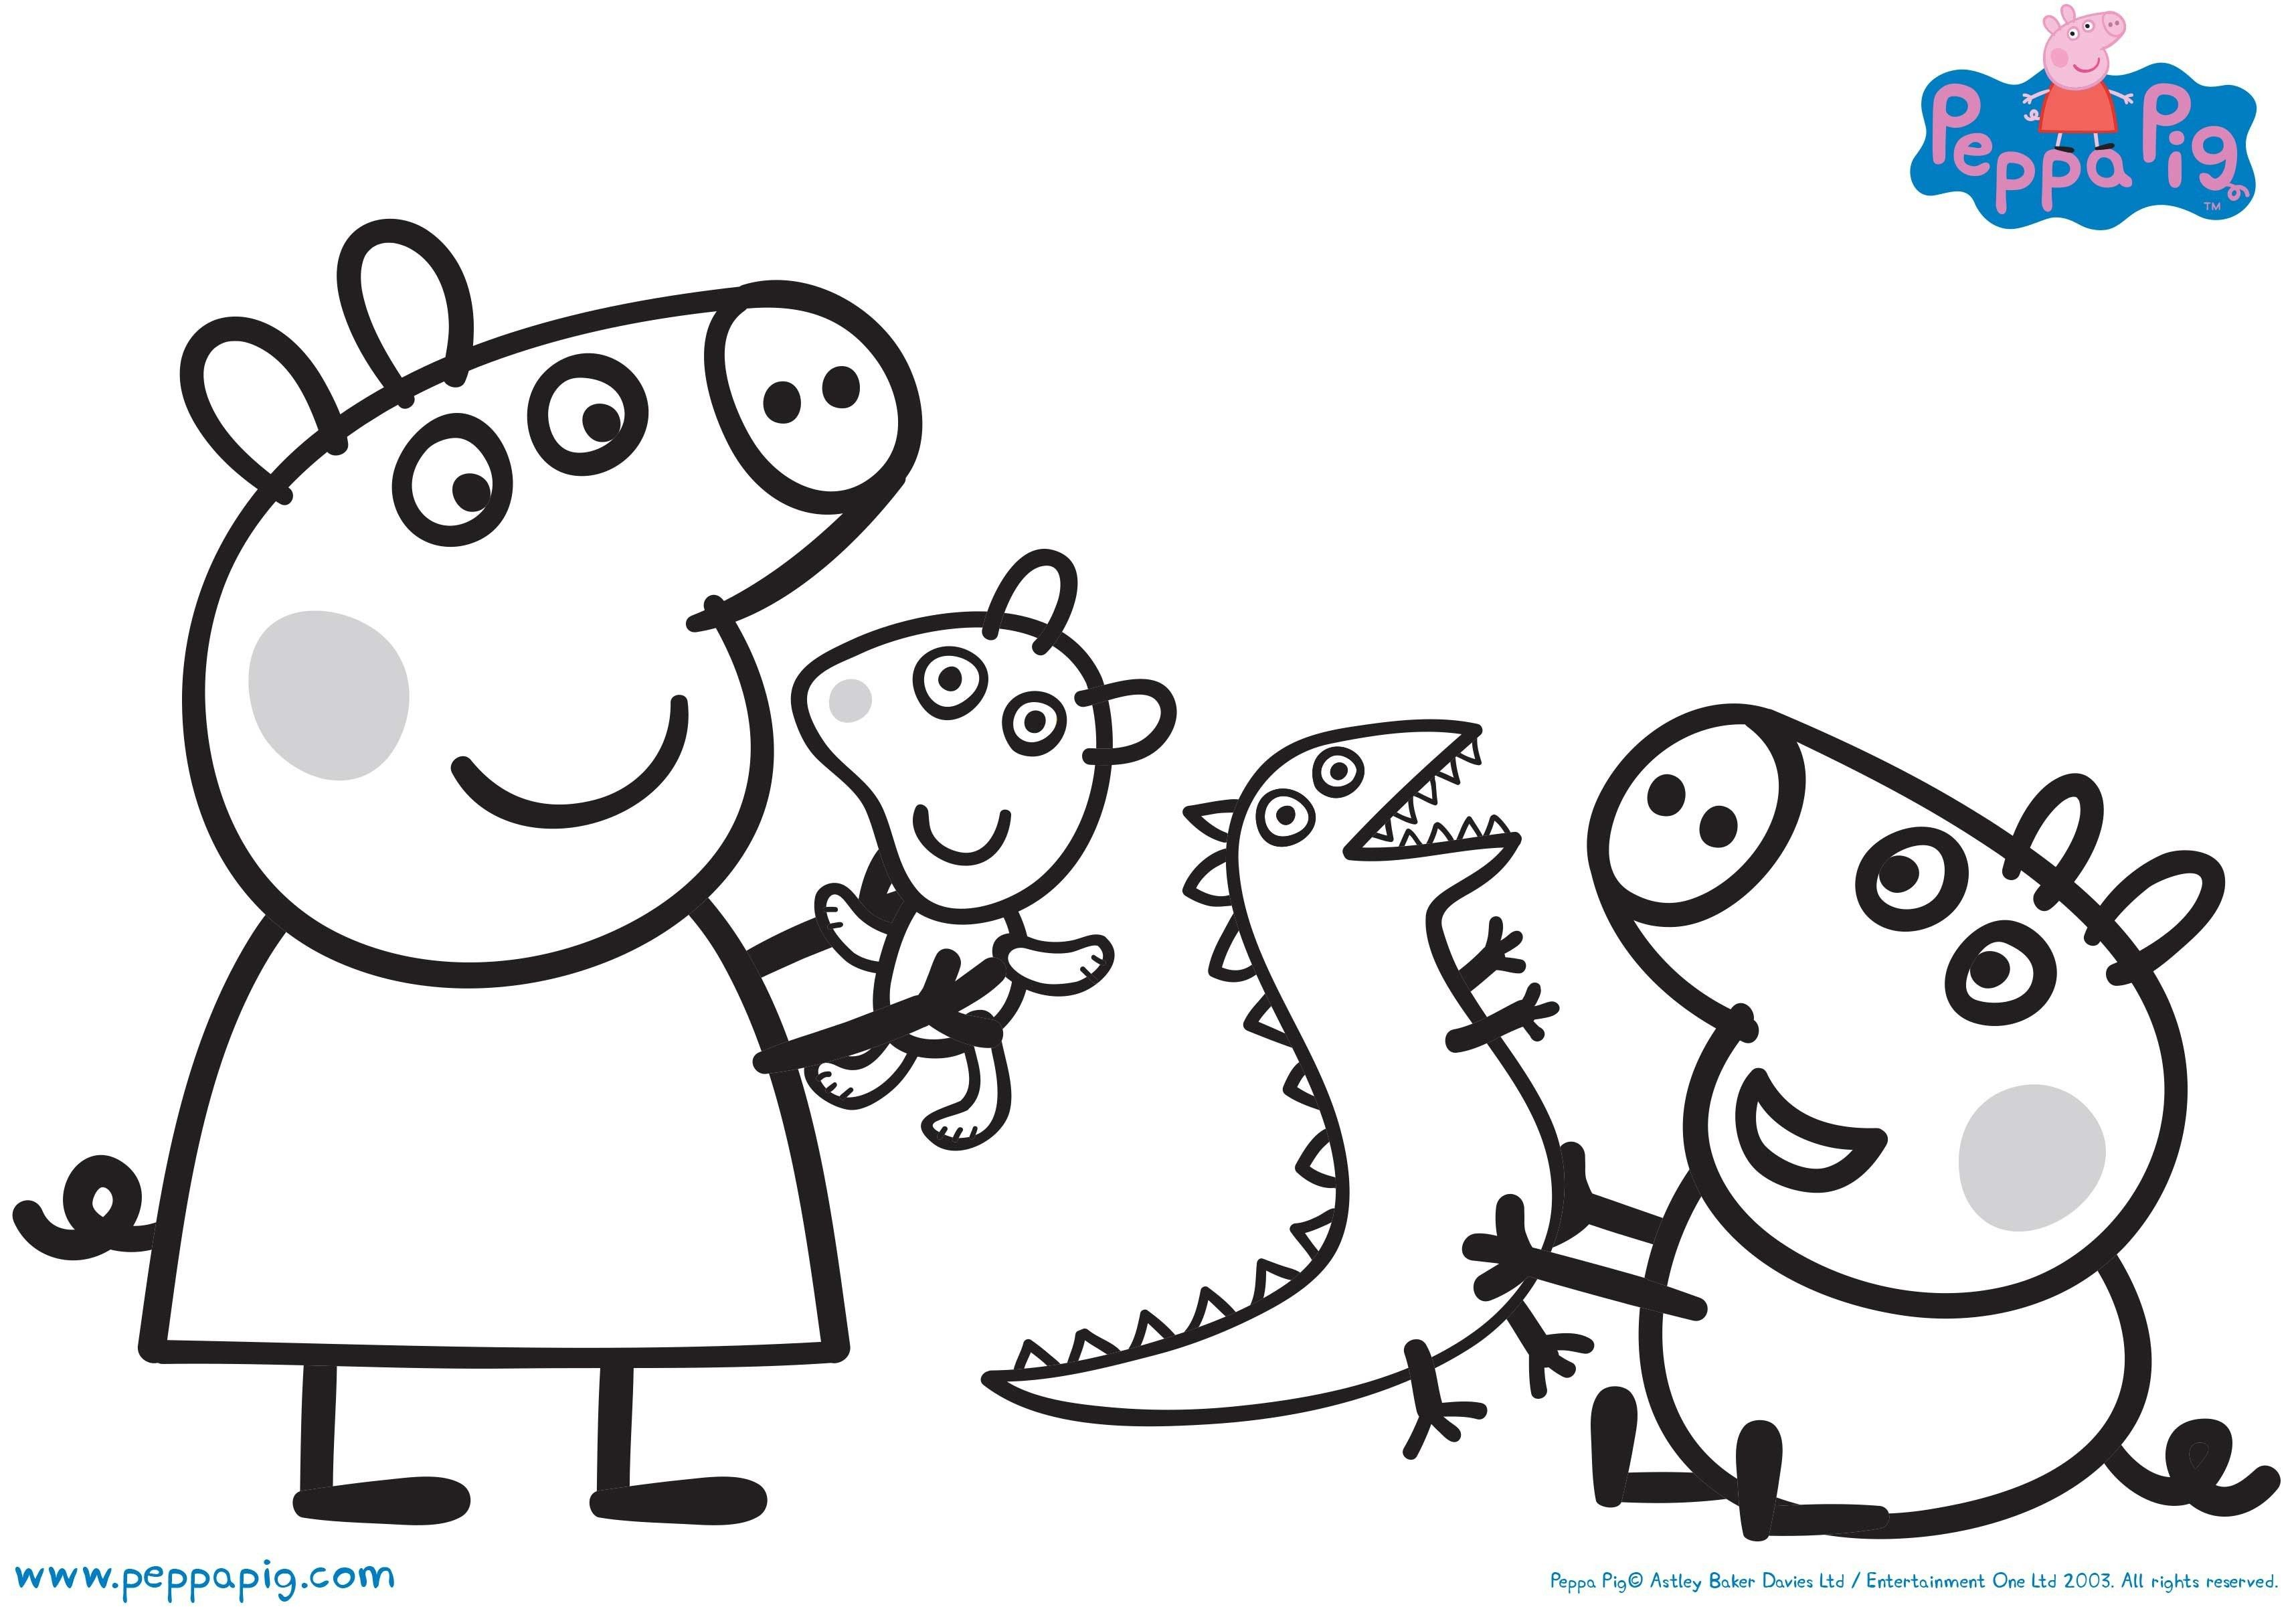 Peppa Pig Colouring Book Uk Through The Thousands Of Photographs On The Internet About Peppa Peppa Pig Coloring Pages Peppa Pig Colouring Peppa Pig Pictures